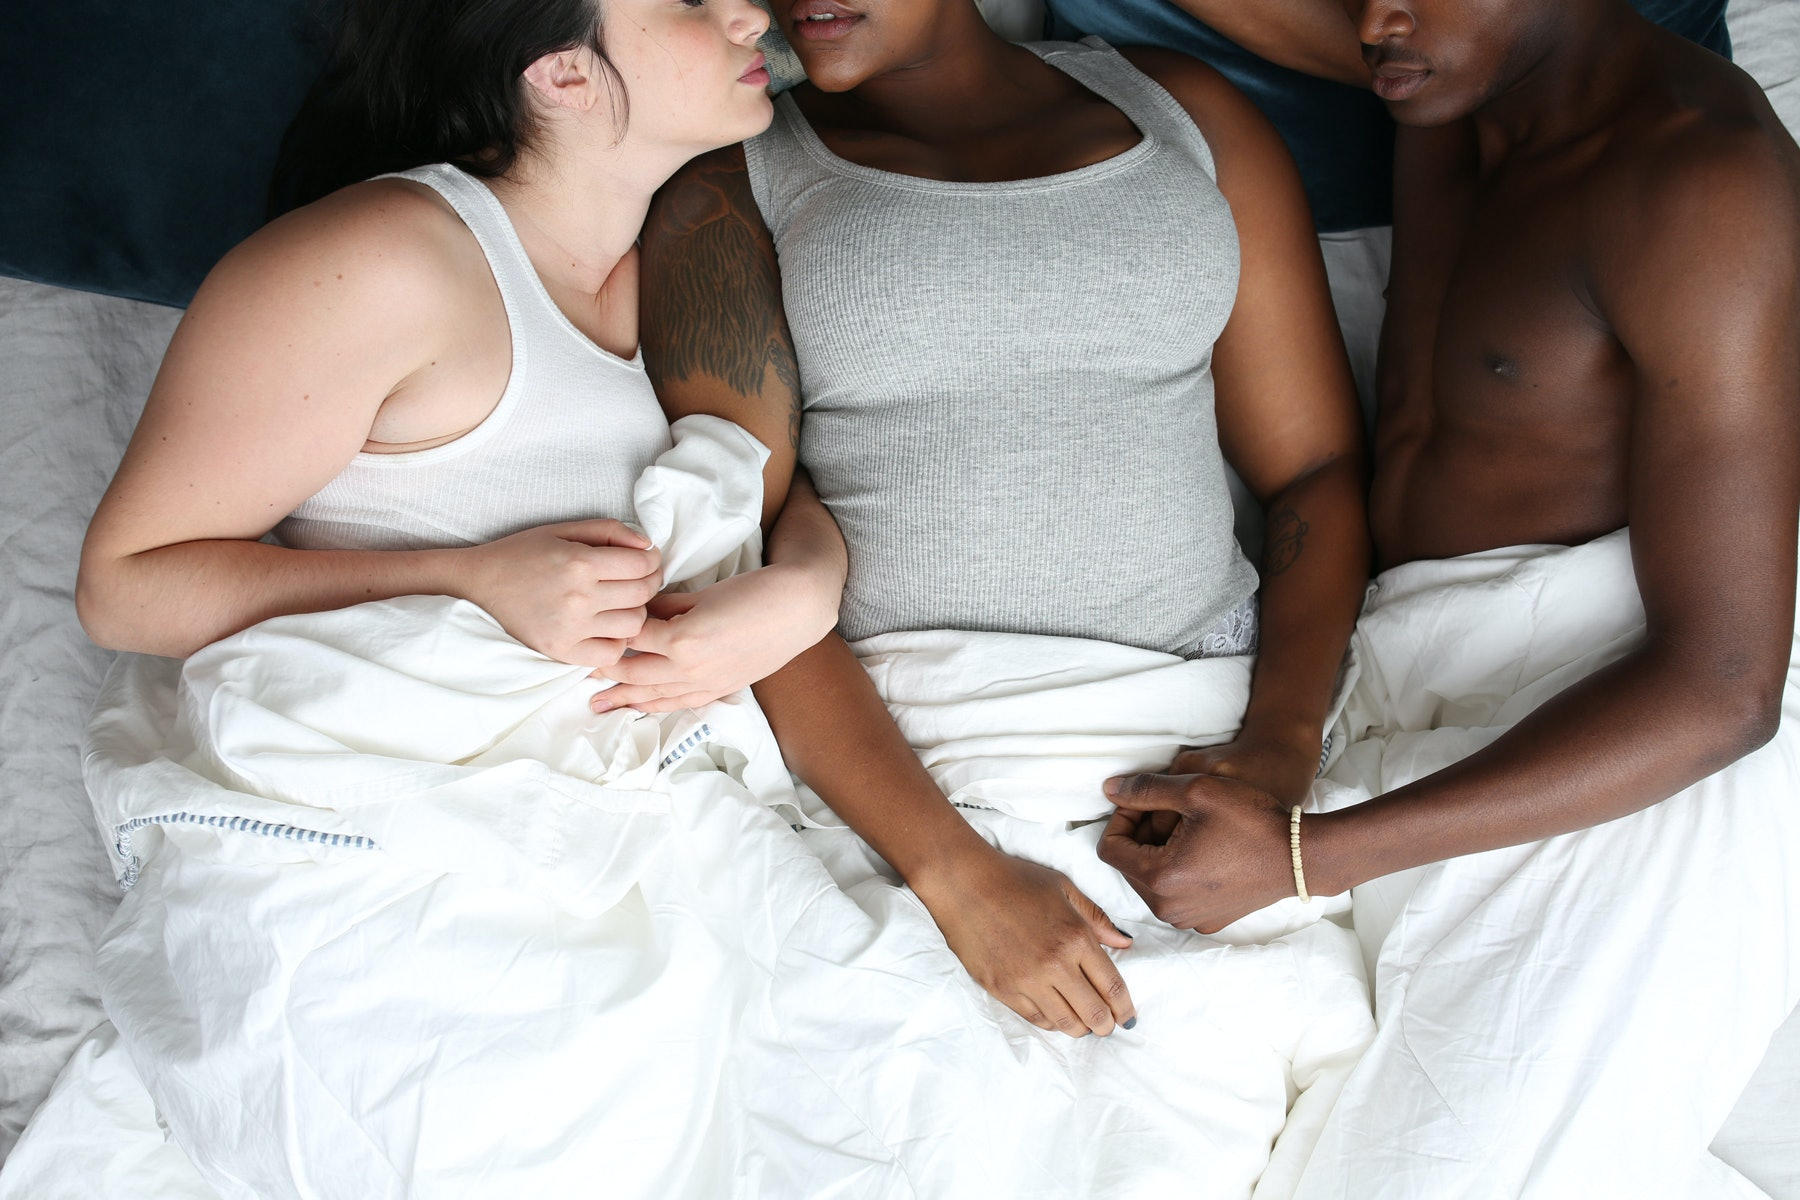 Women In Oklahoma Looking For Threesome